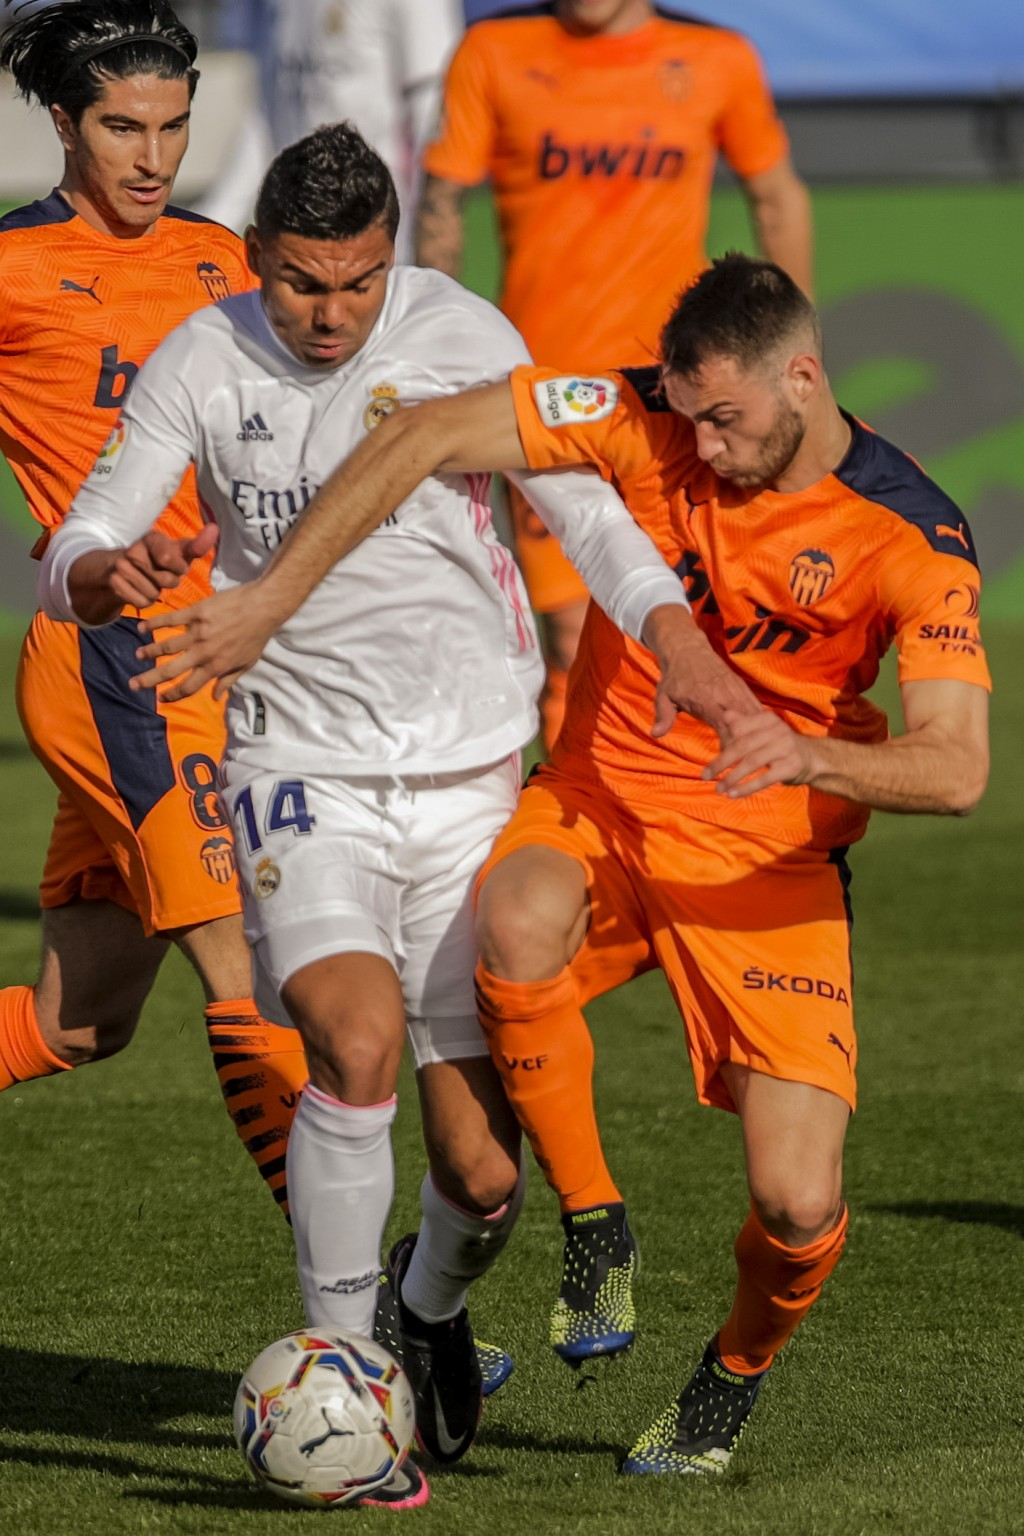 Real Madrid's Casemiro, left, is tackled by Valencia's Ferro during the Spanish La Liga soccer match between Real Madrid and Valencia at the Alfredo D...